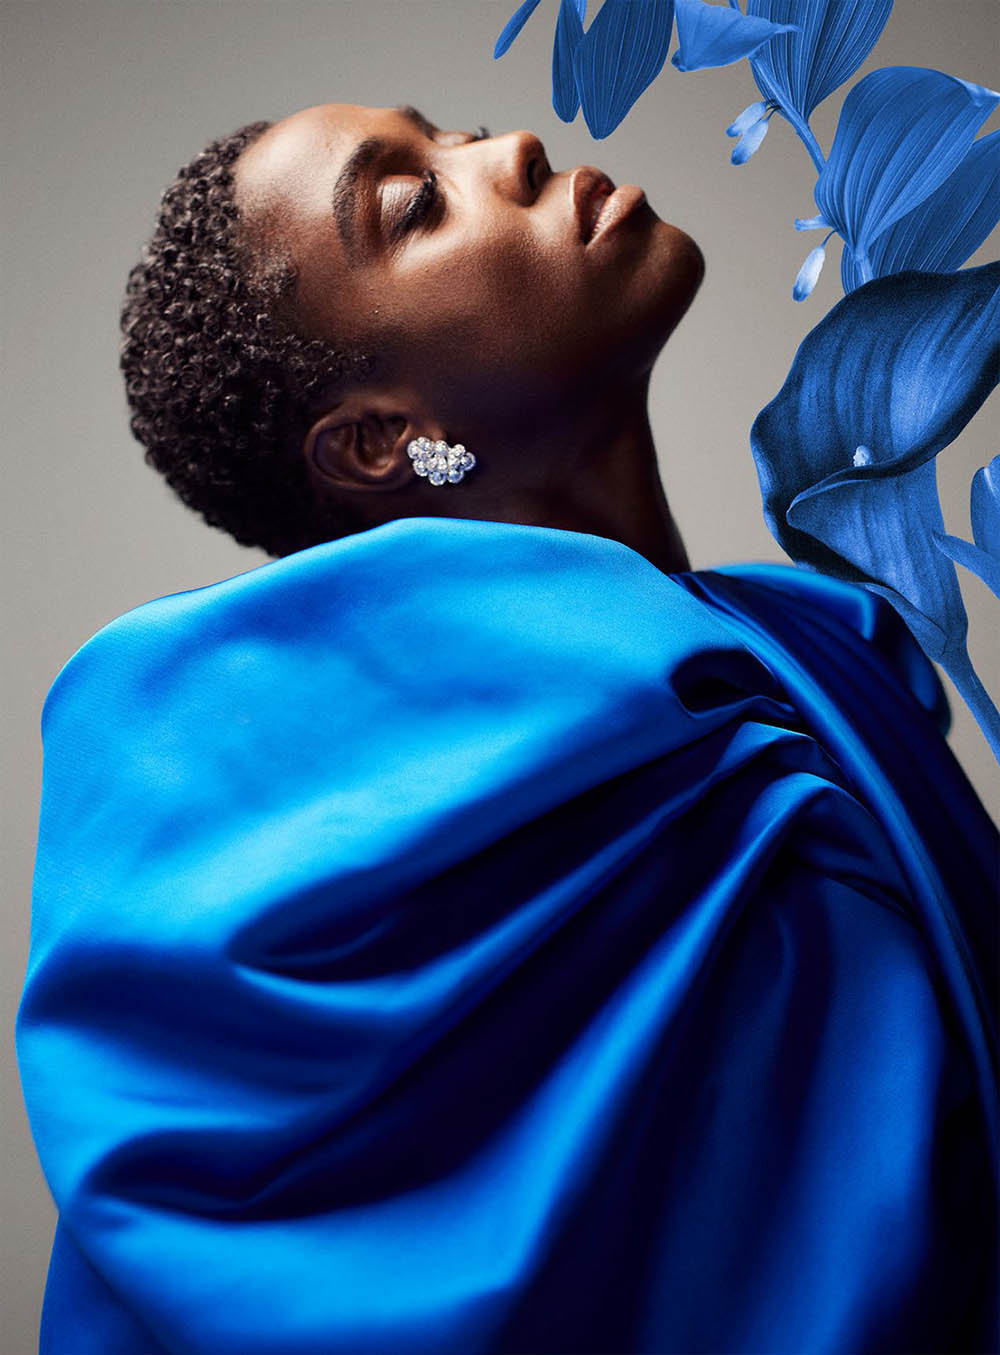 Lashana Lynch covers Harper's Bazaar UK December 2020 by Richard Phibbs